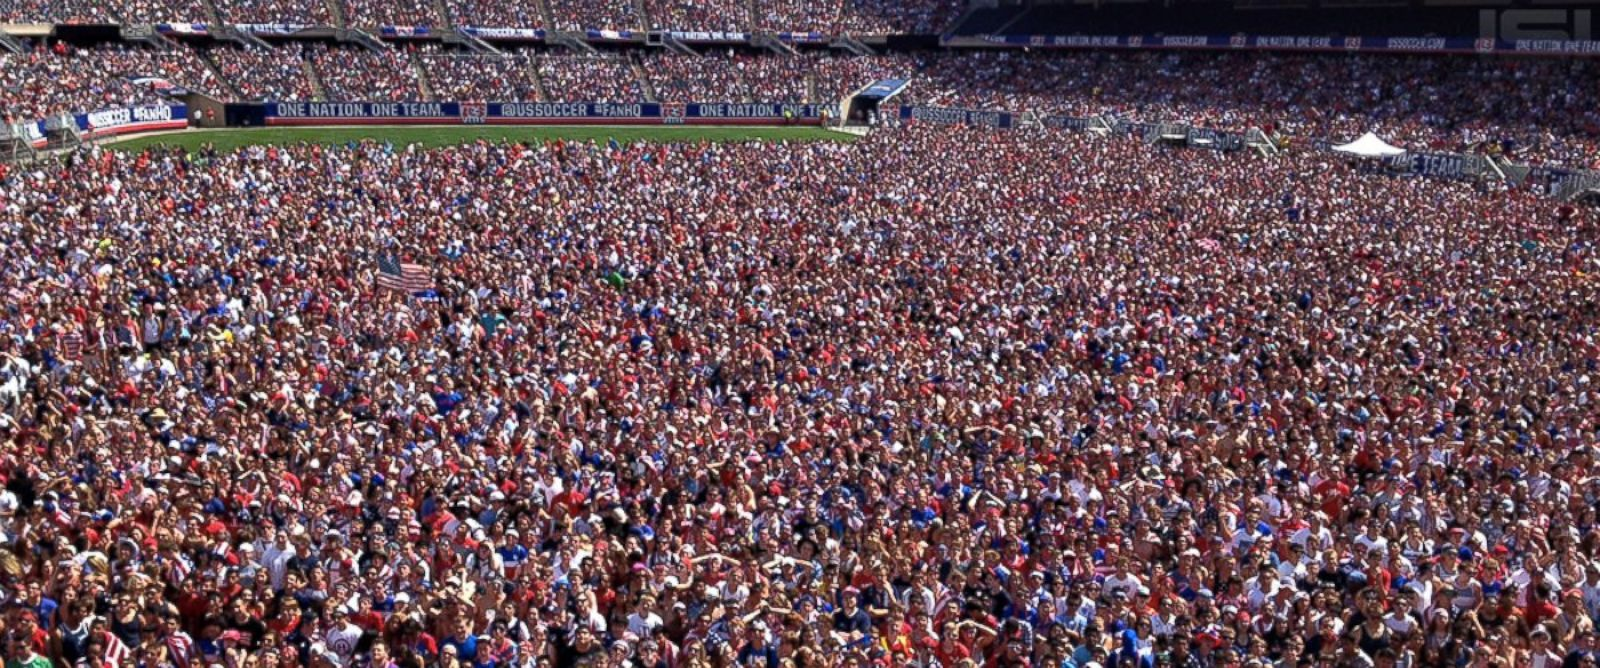 PHOTO: The official U.S. Soccer twitter feed posted this image of the massive crowd at Soldier Field in Chicago gathered to watch the United States versus Belgium World Cup match on July 1, 2014.